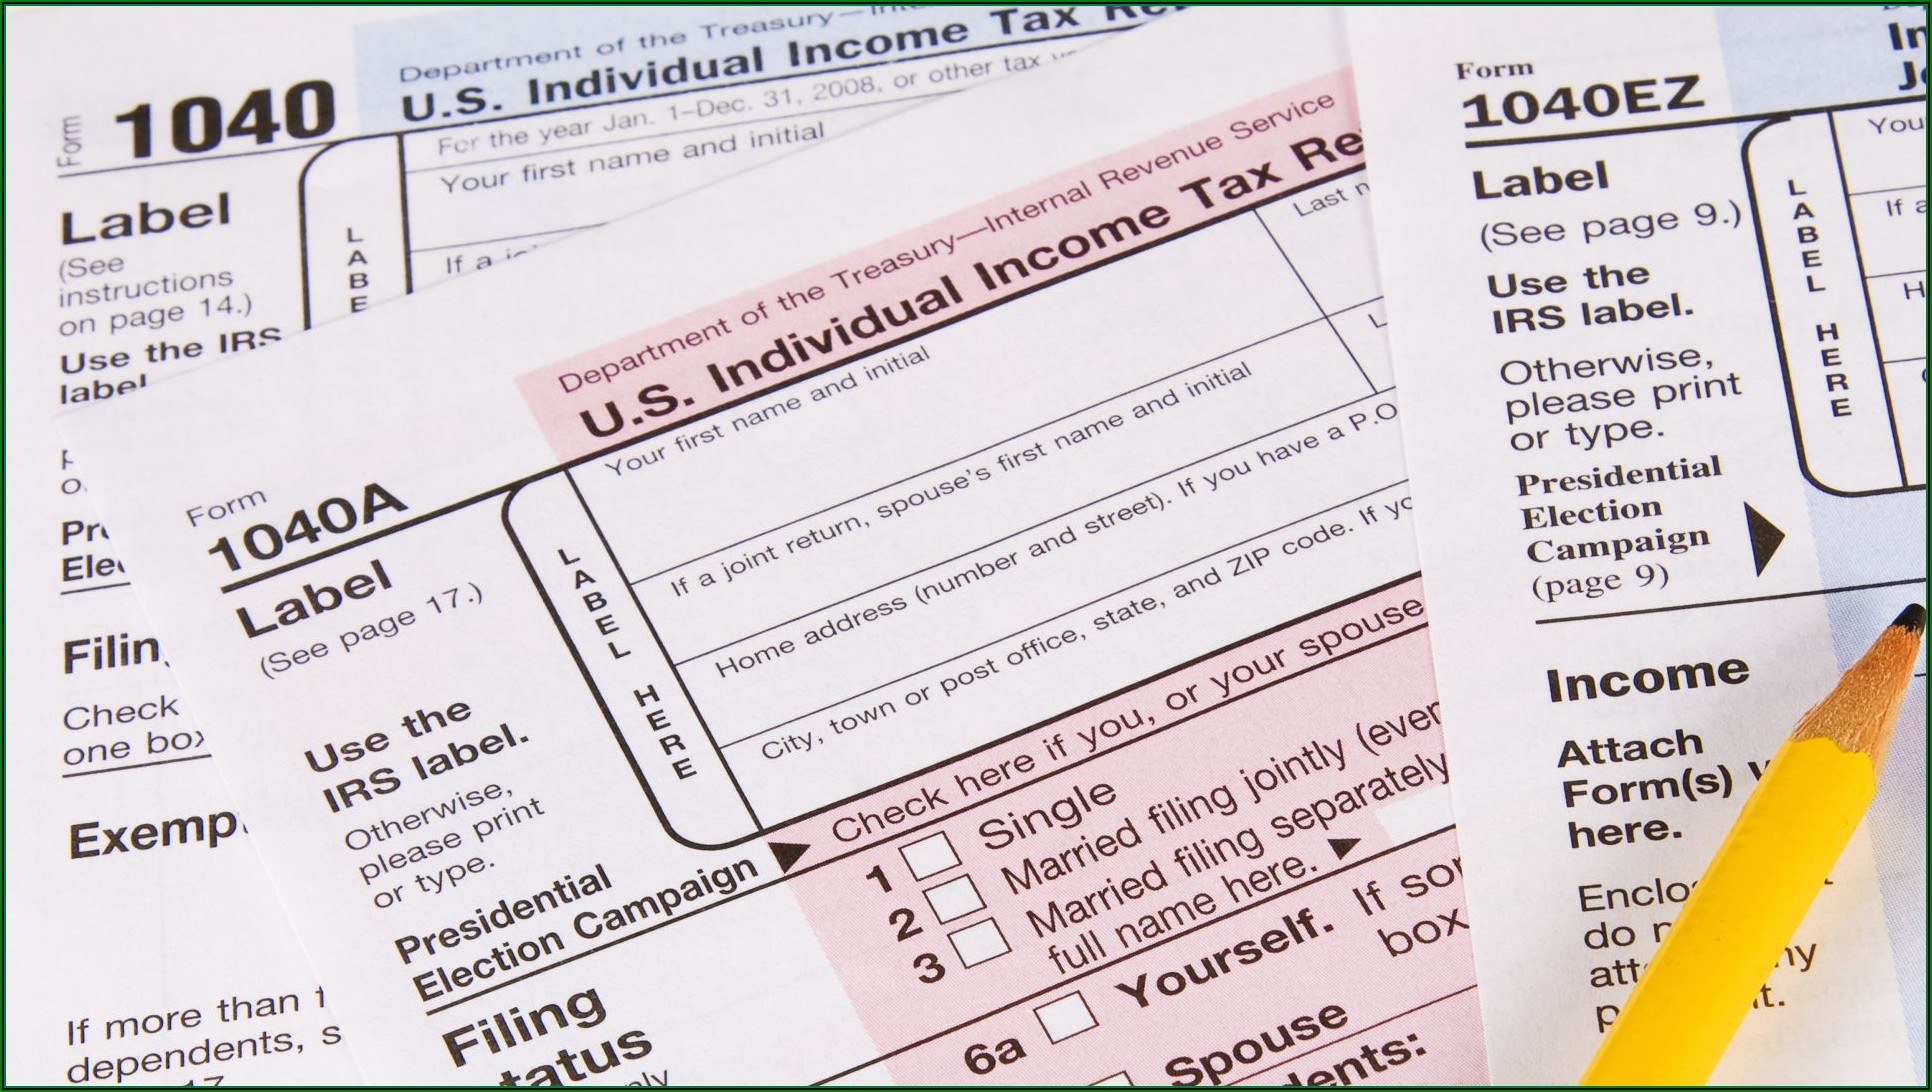 Irs.gov Tax Forms 1040a